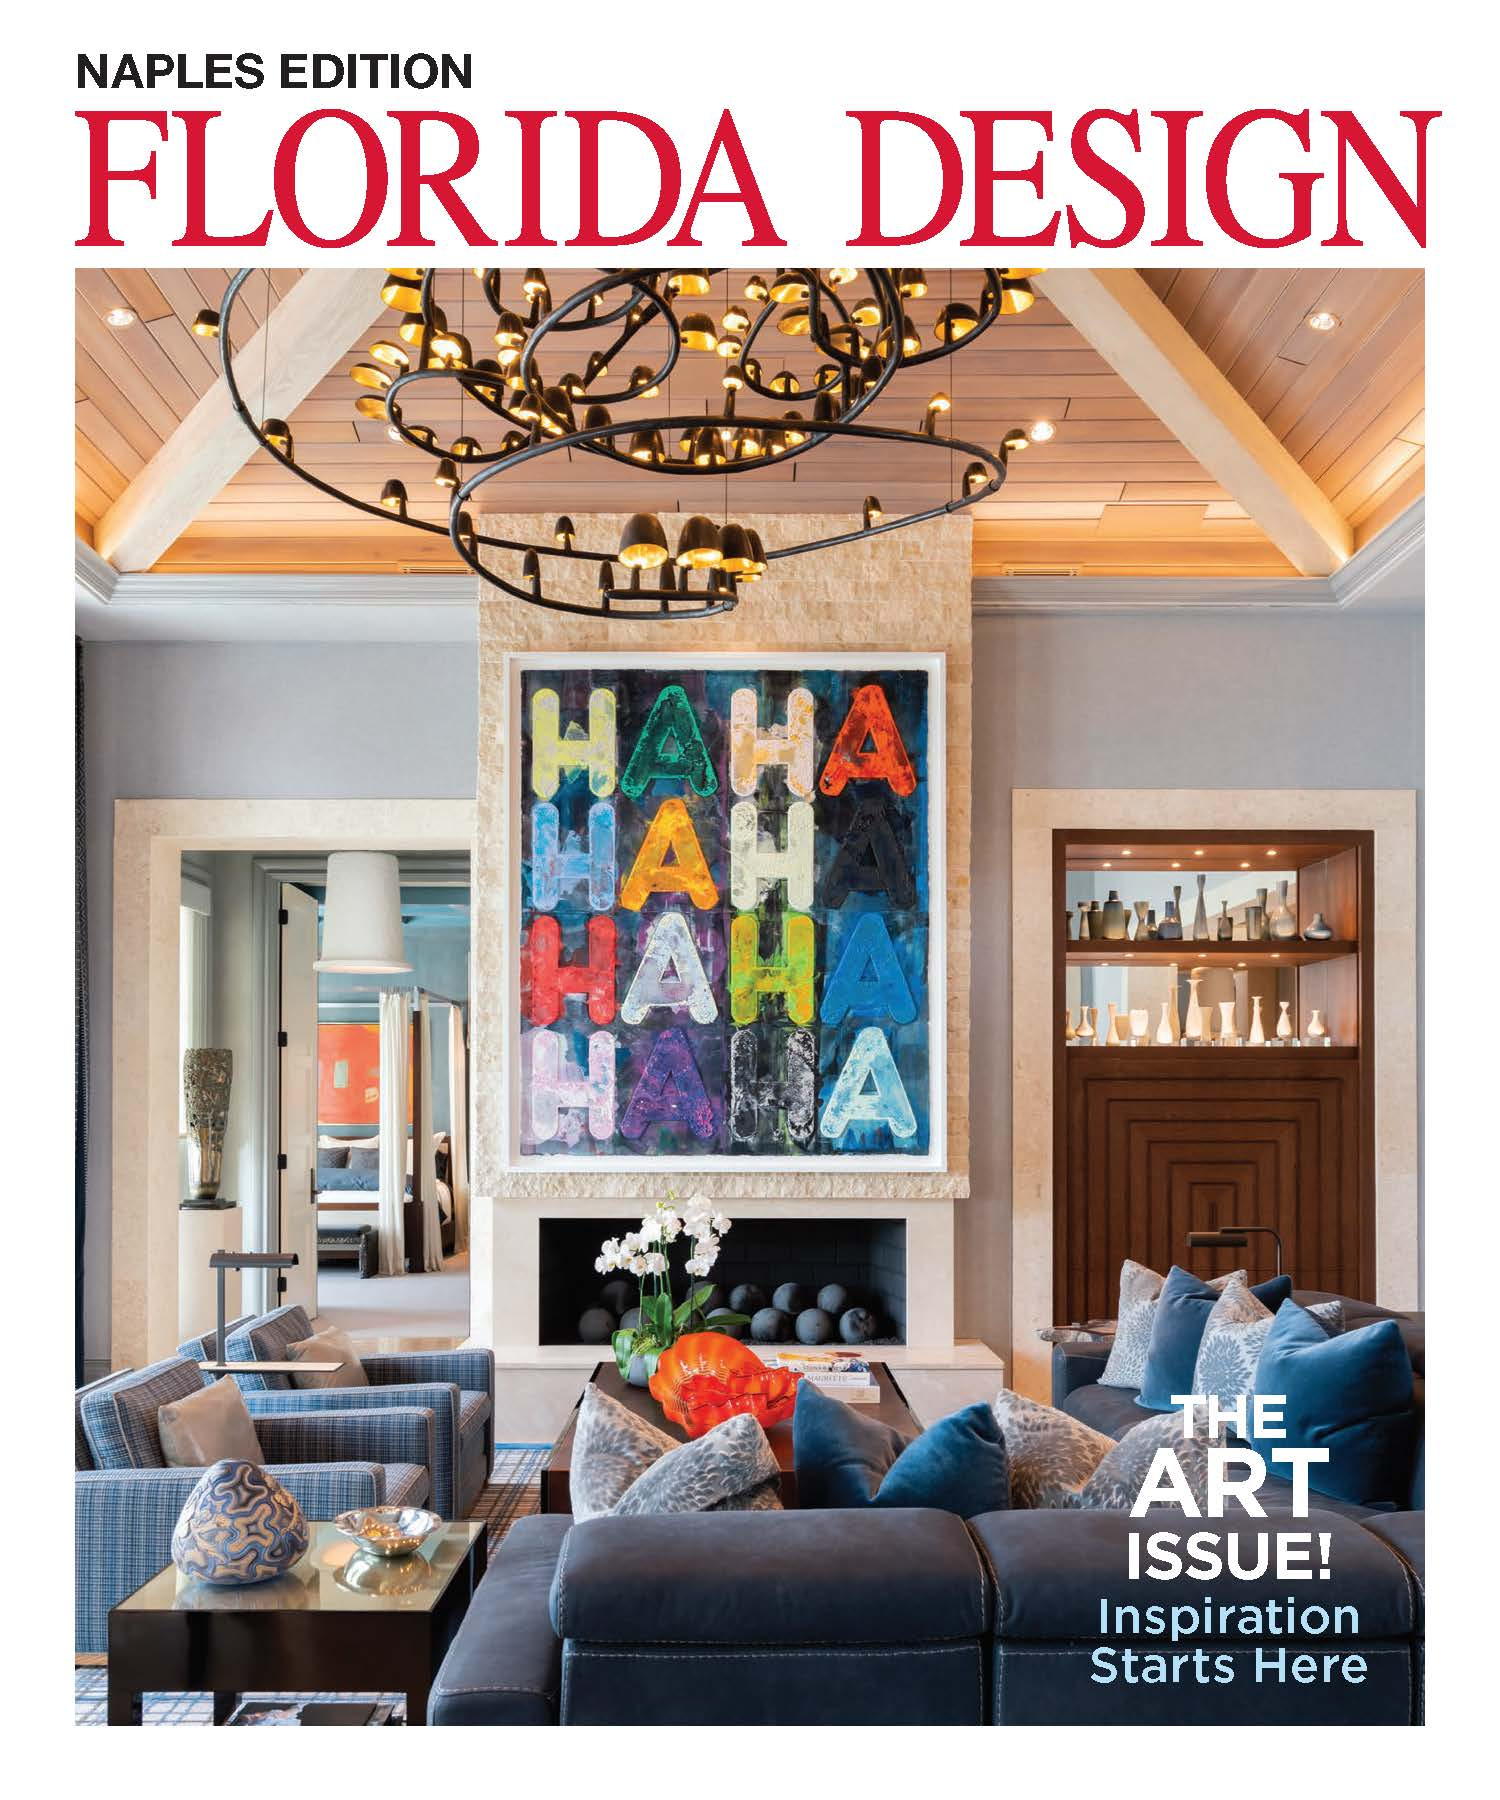 The Art Issue! - Interior Design: David Ostrander, Iluminus GroupArchitecture: Herscoe Hajjar ArchitectsBuilder: Toscana Homes